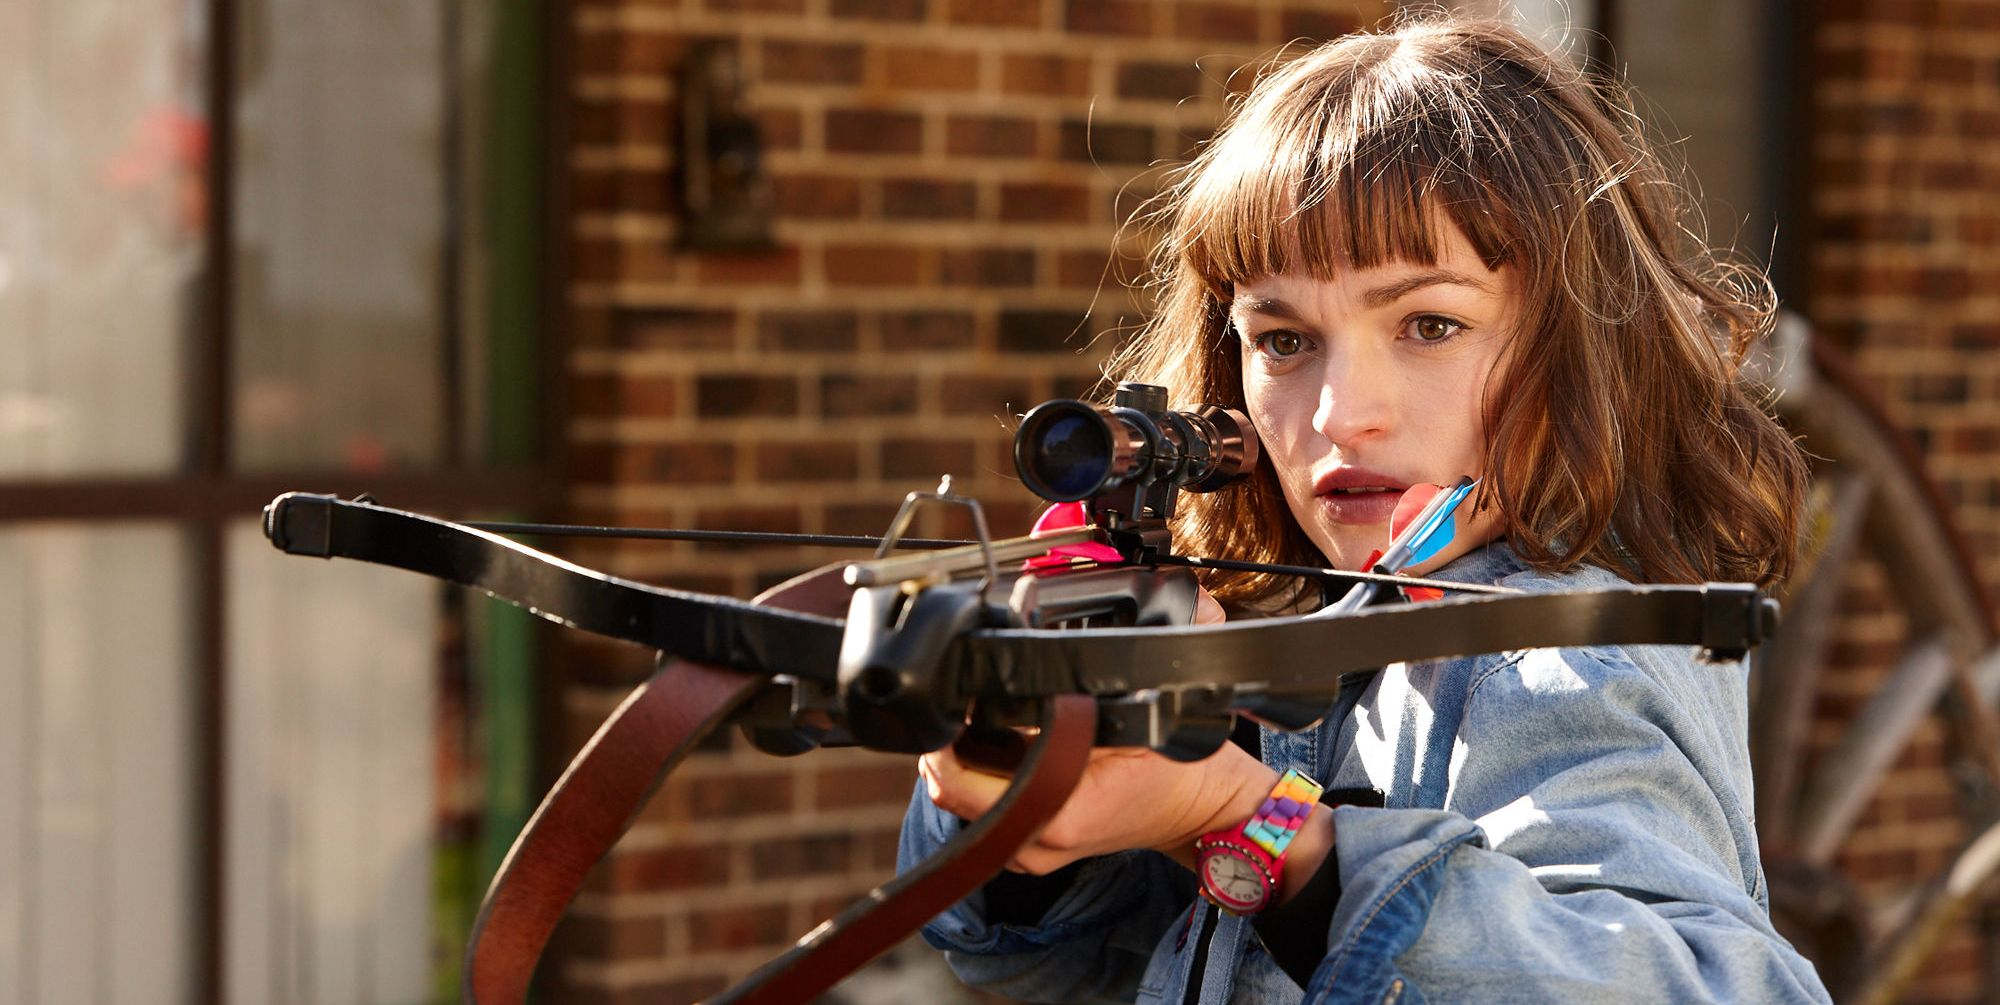 Bella Nixon points a crossbow at Colby Thorne in Home and Away